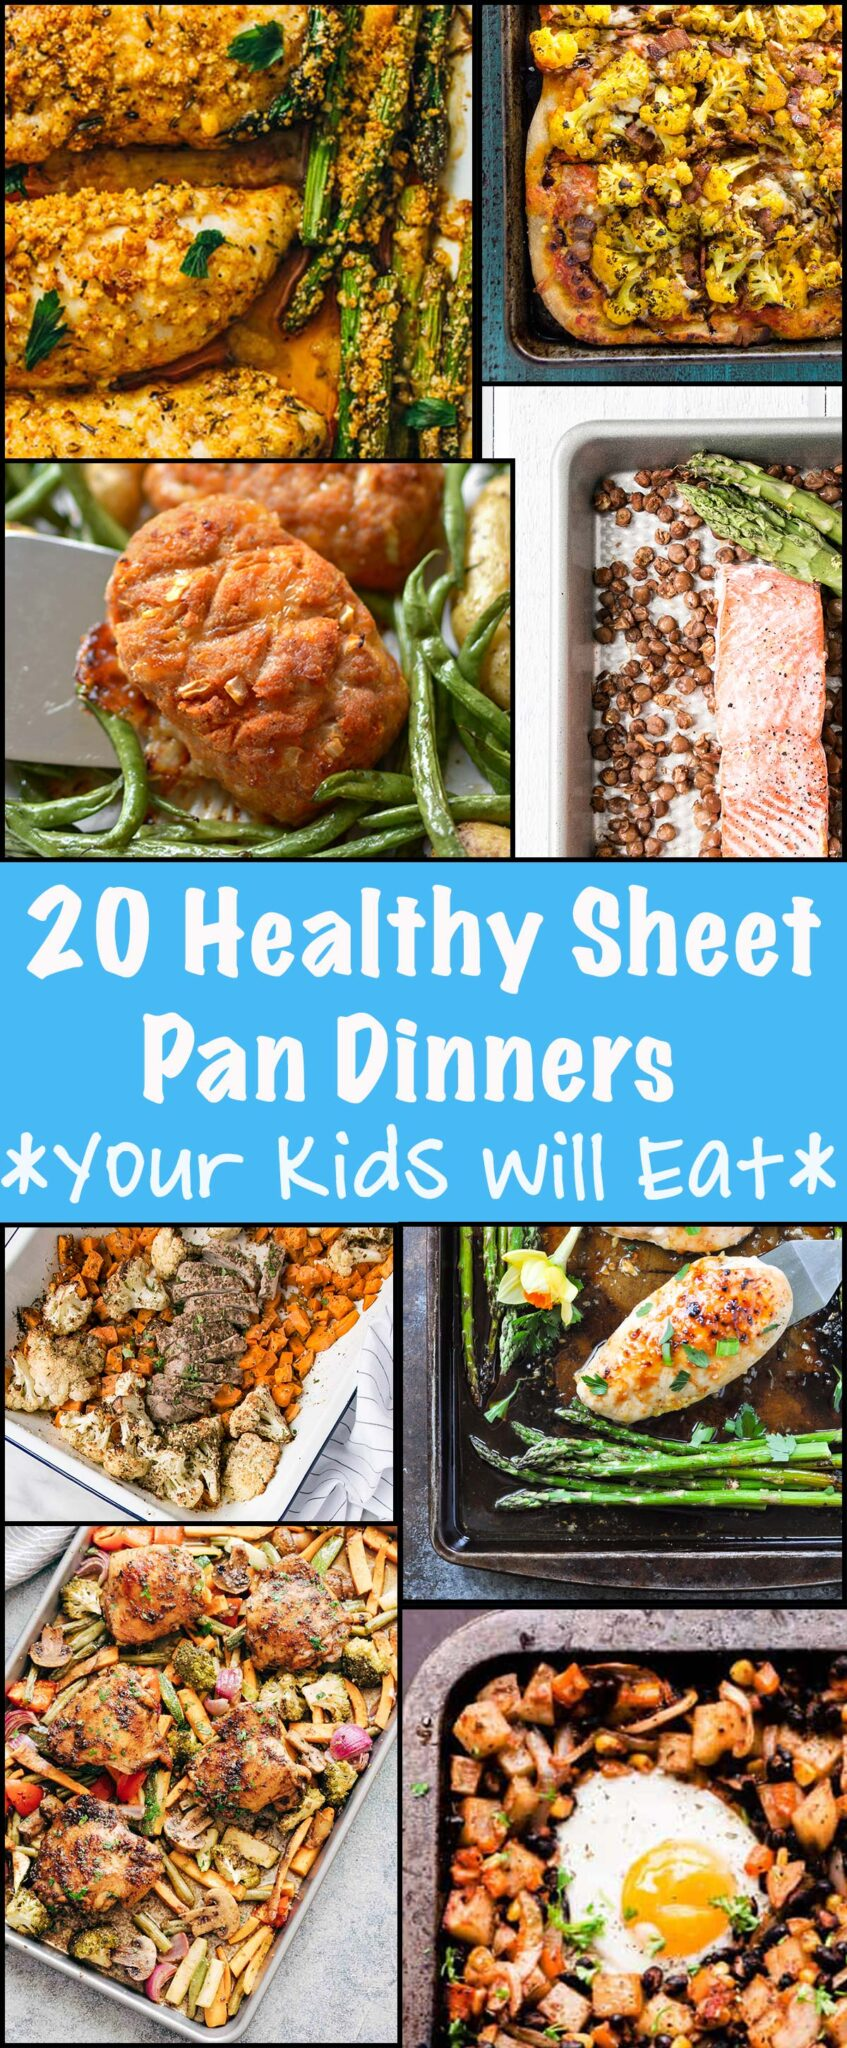 20 Healthy Sheet Pan Dinners Your Kids Will Actually Eat